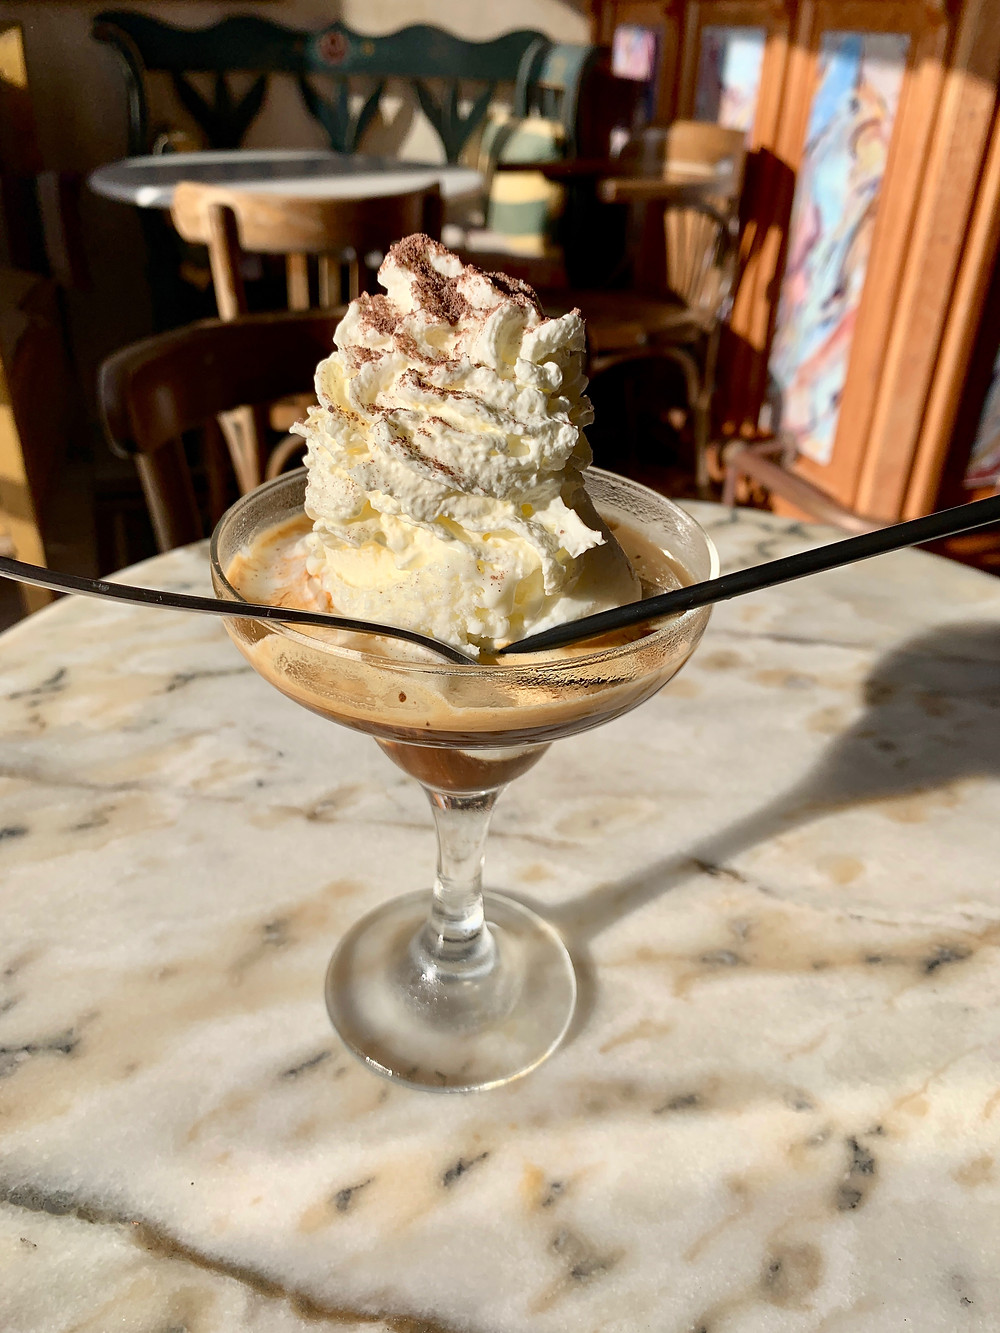 Affogato (ice cream with espresso) served at Meteor Cafe Oia Santorini Greece